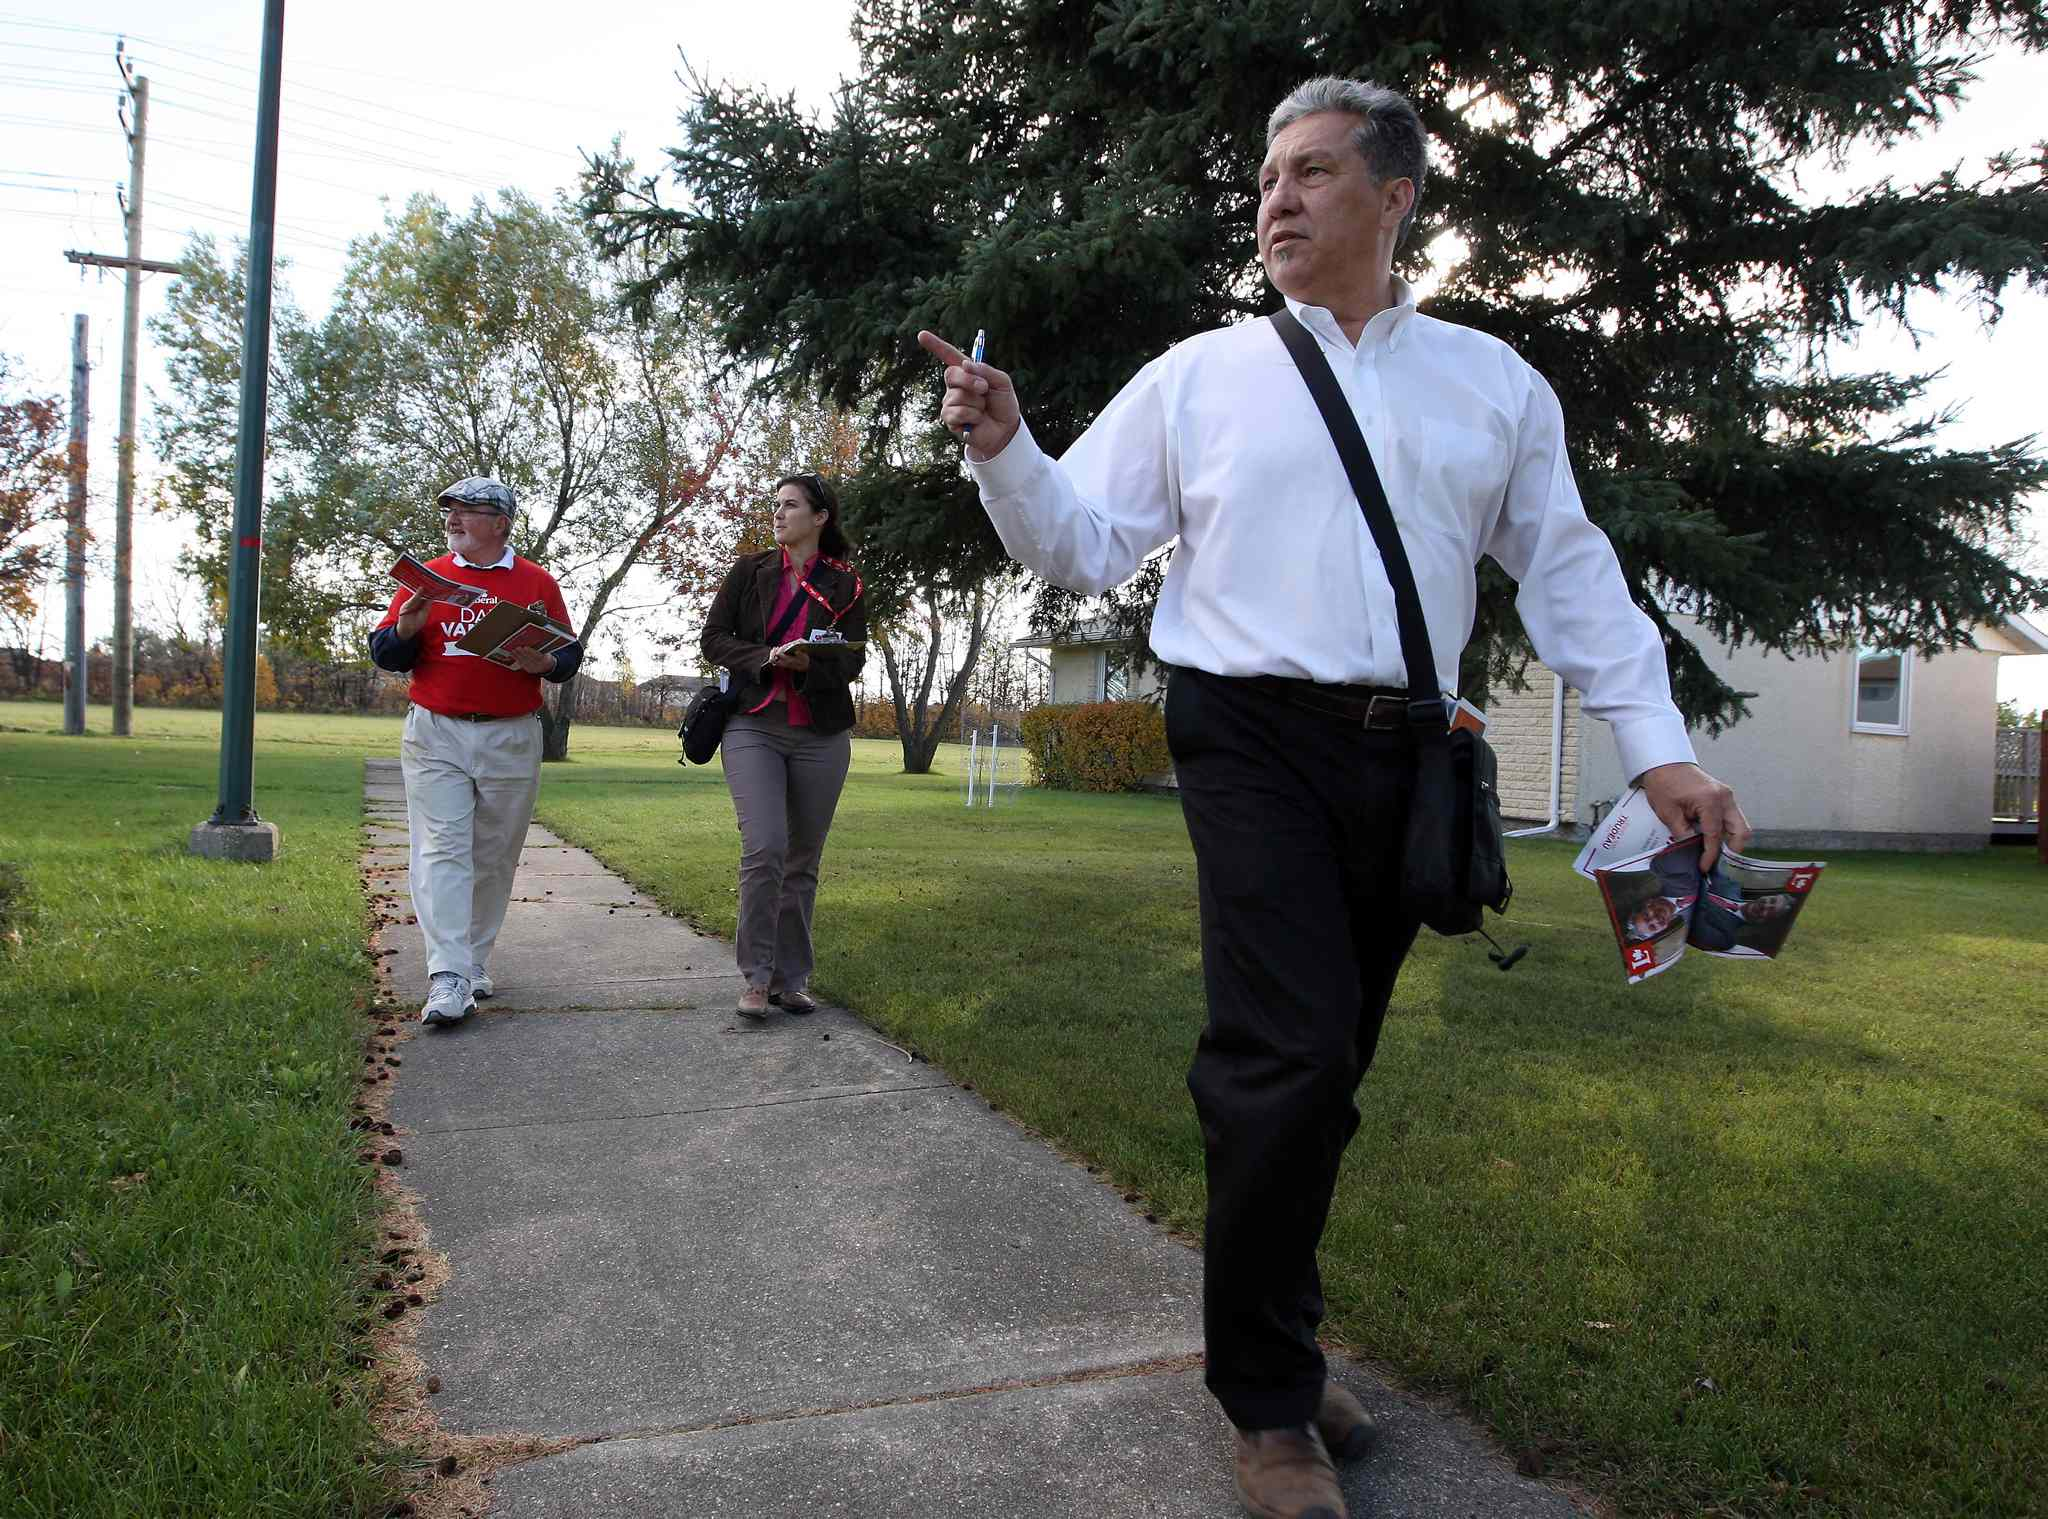 Saint Boniface-Saint Vital Liberal candidate Dan Vandal campaigns in the Southdale area Wednesday.